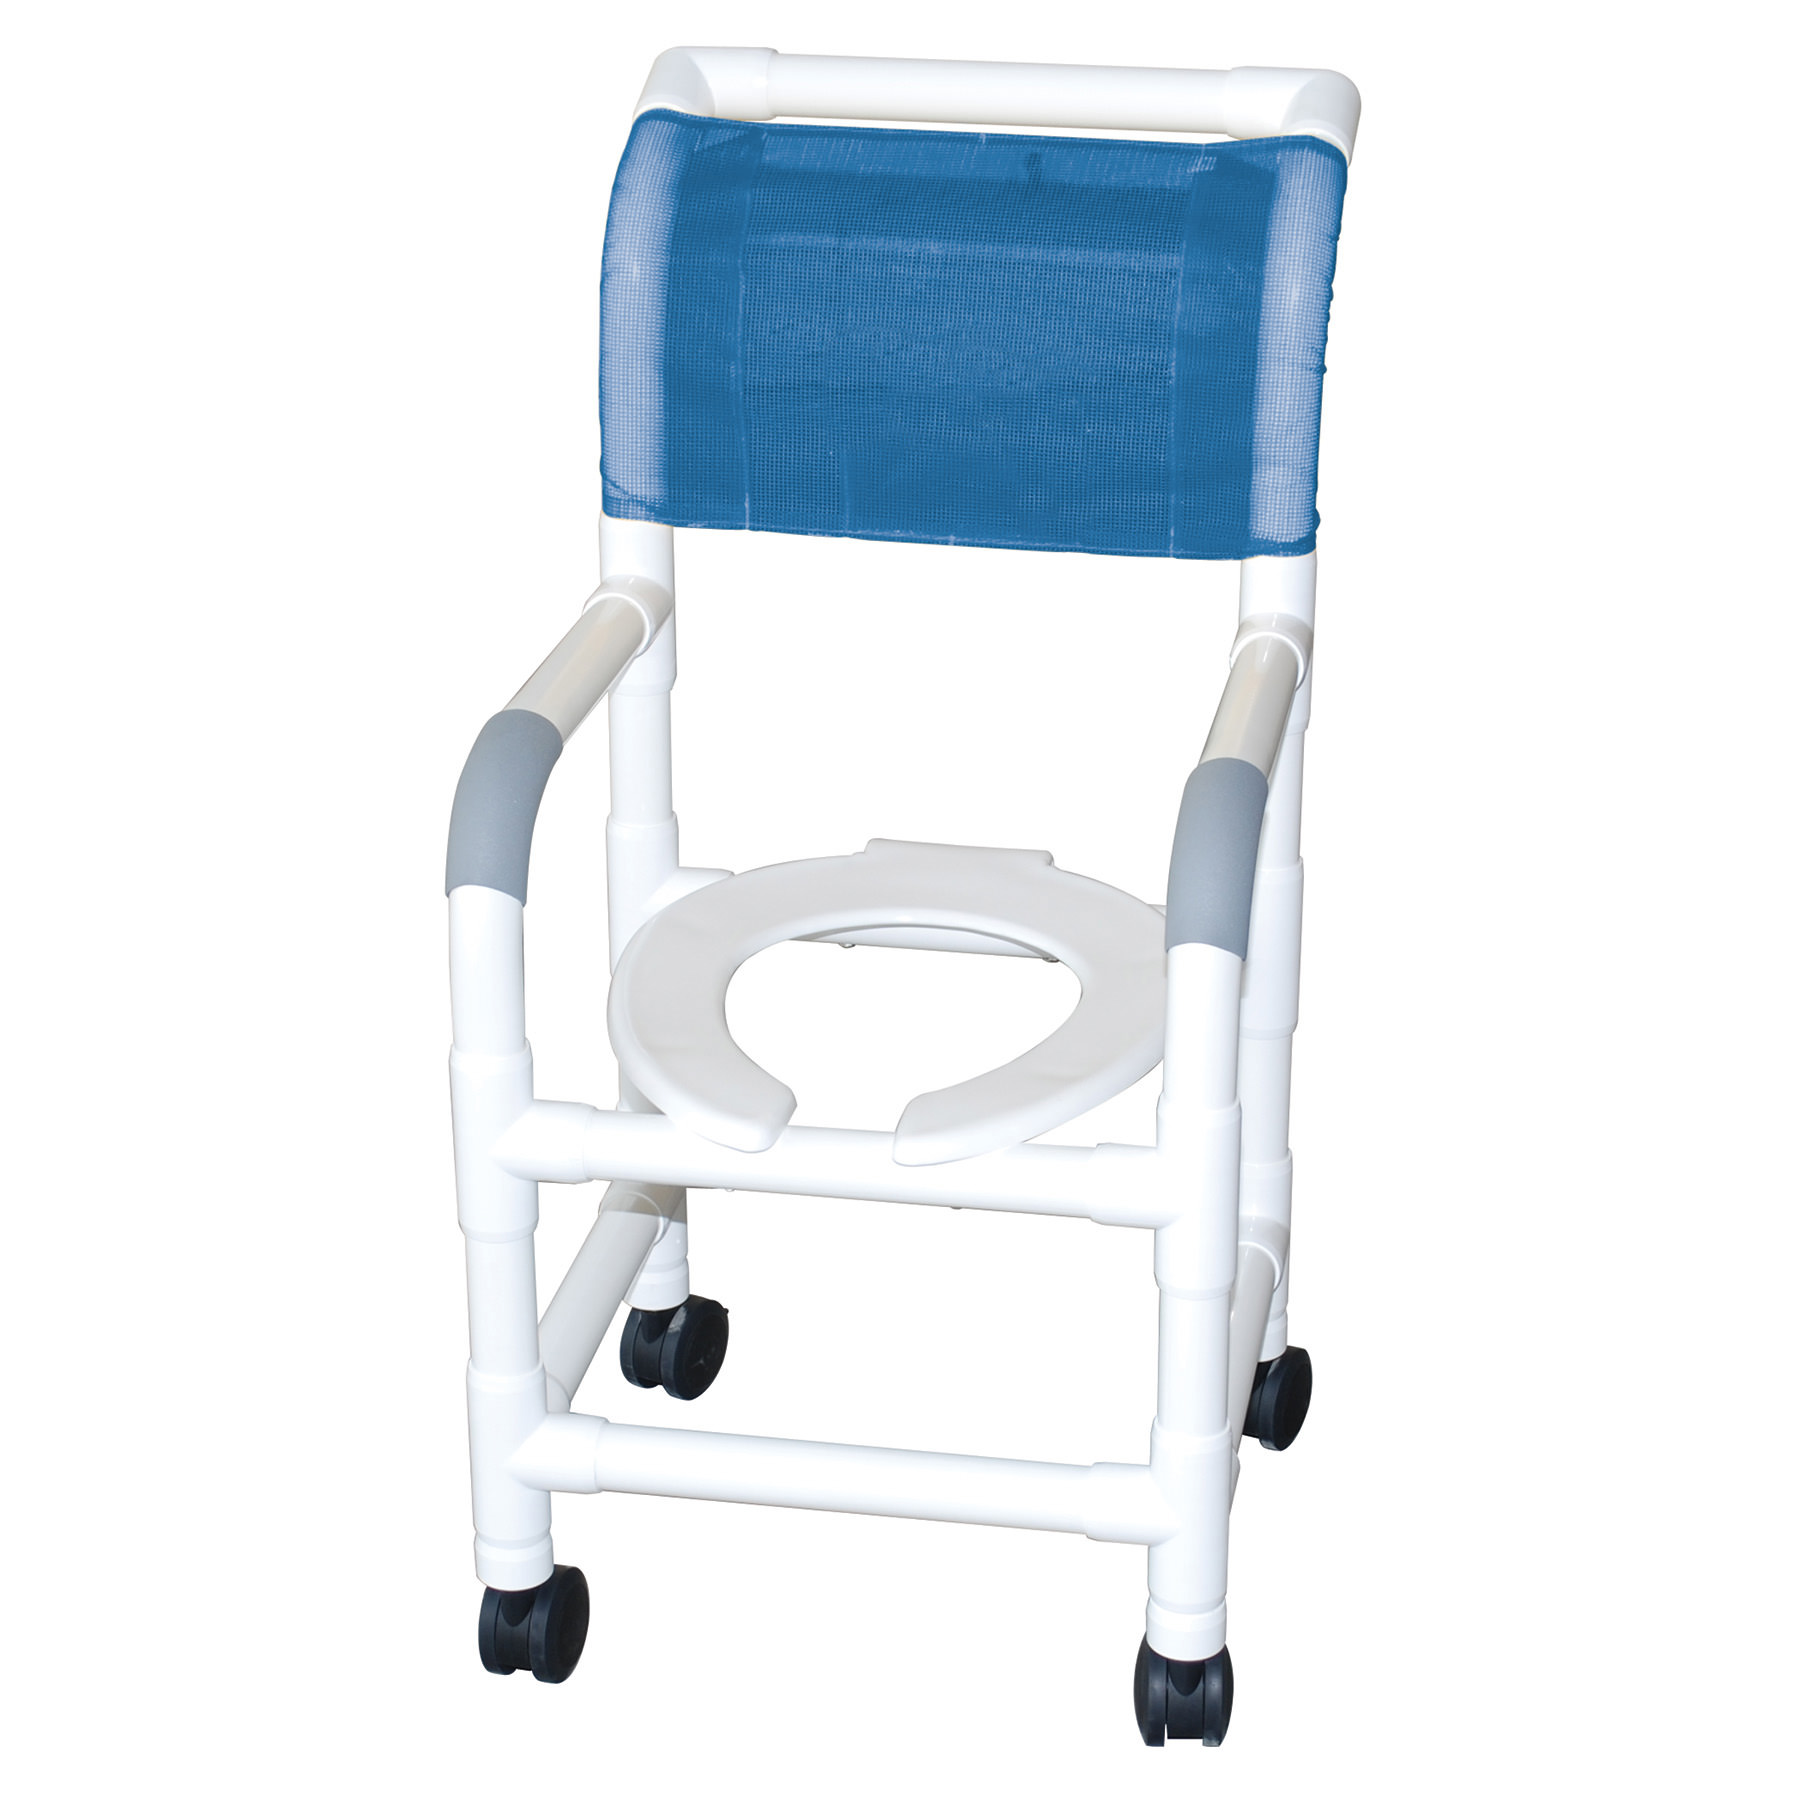 MJM International 115-3 Pediatric / Small Adult Shower Chair